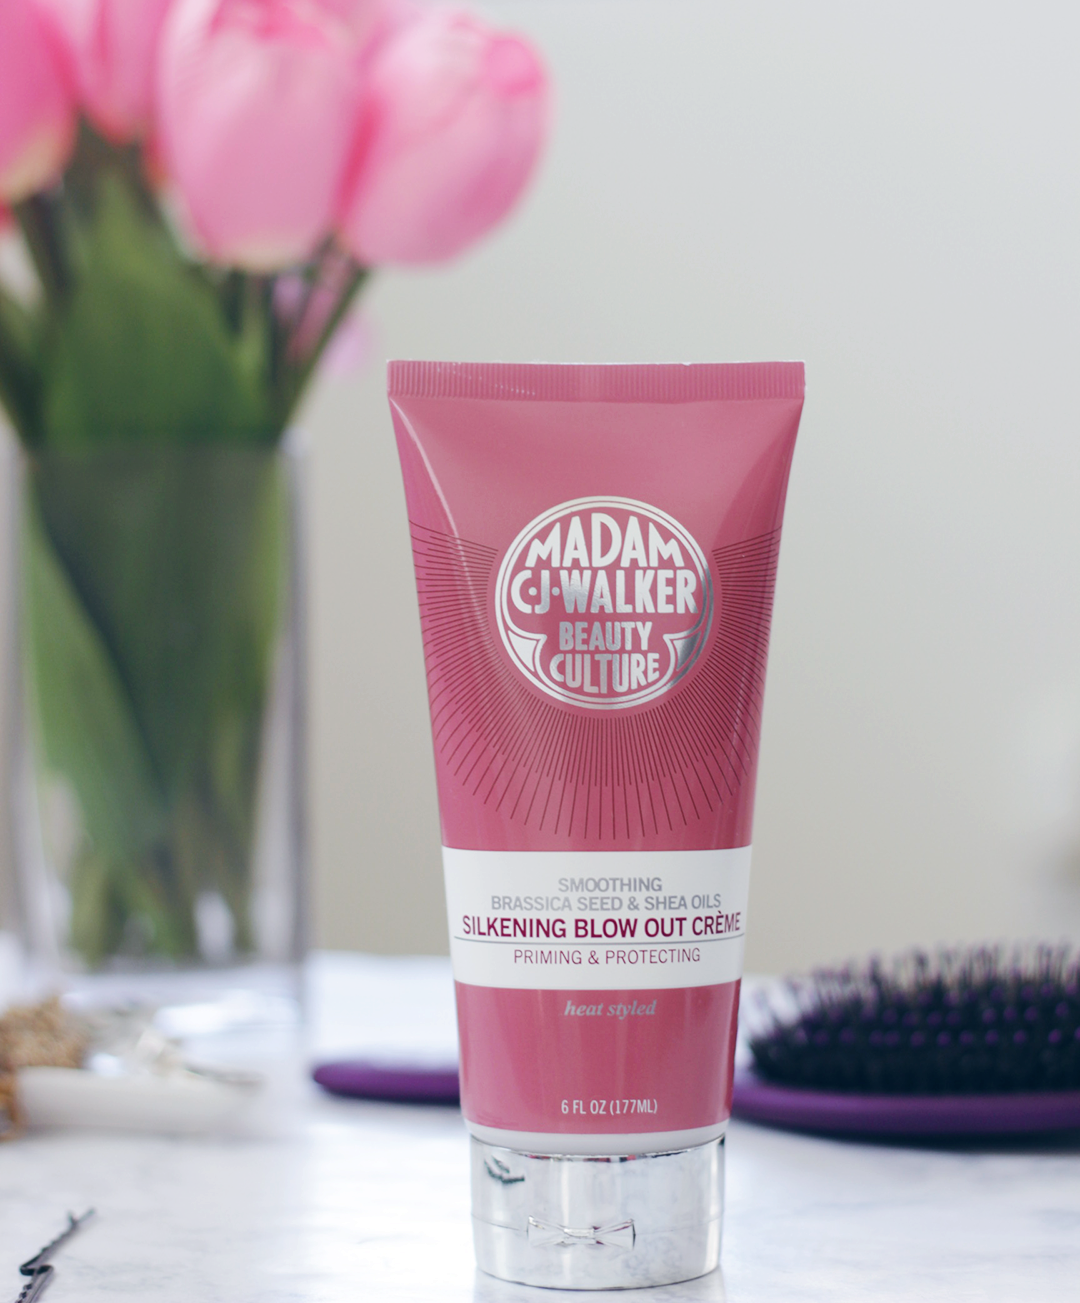 Madam Cj Walker Beauty Culture Blow Out Creme Makeup Life And Love Makeup Life And Love